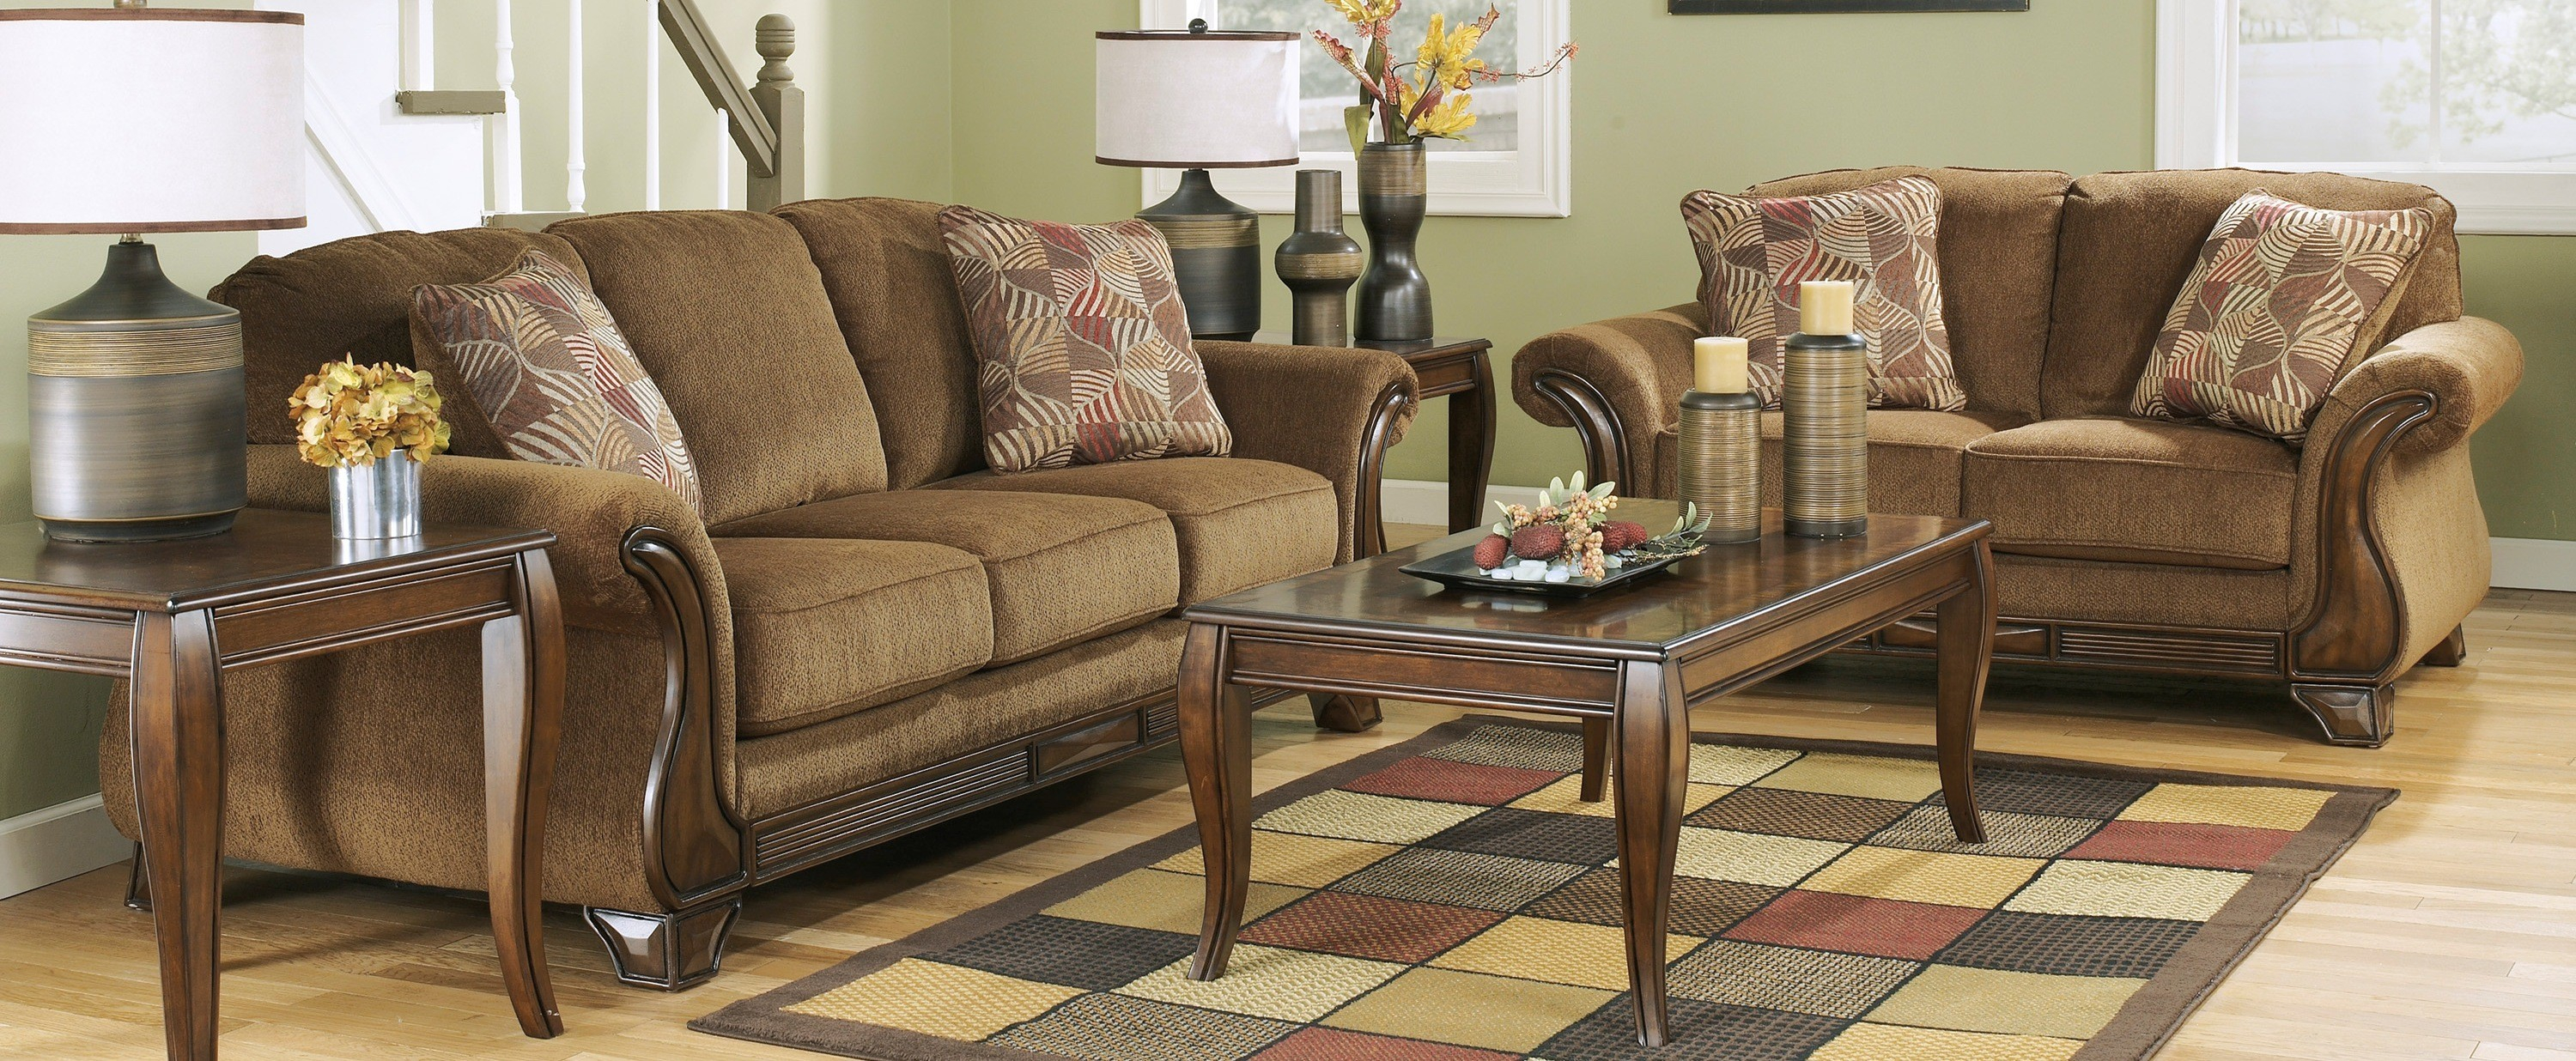 Ashley Furniture Montgomery Mocha Living Room Set A San Antonio 4 in Living Room Sets San Antonio